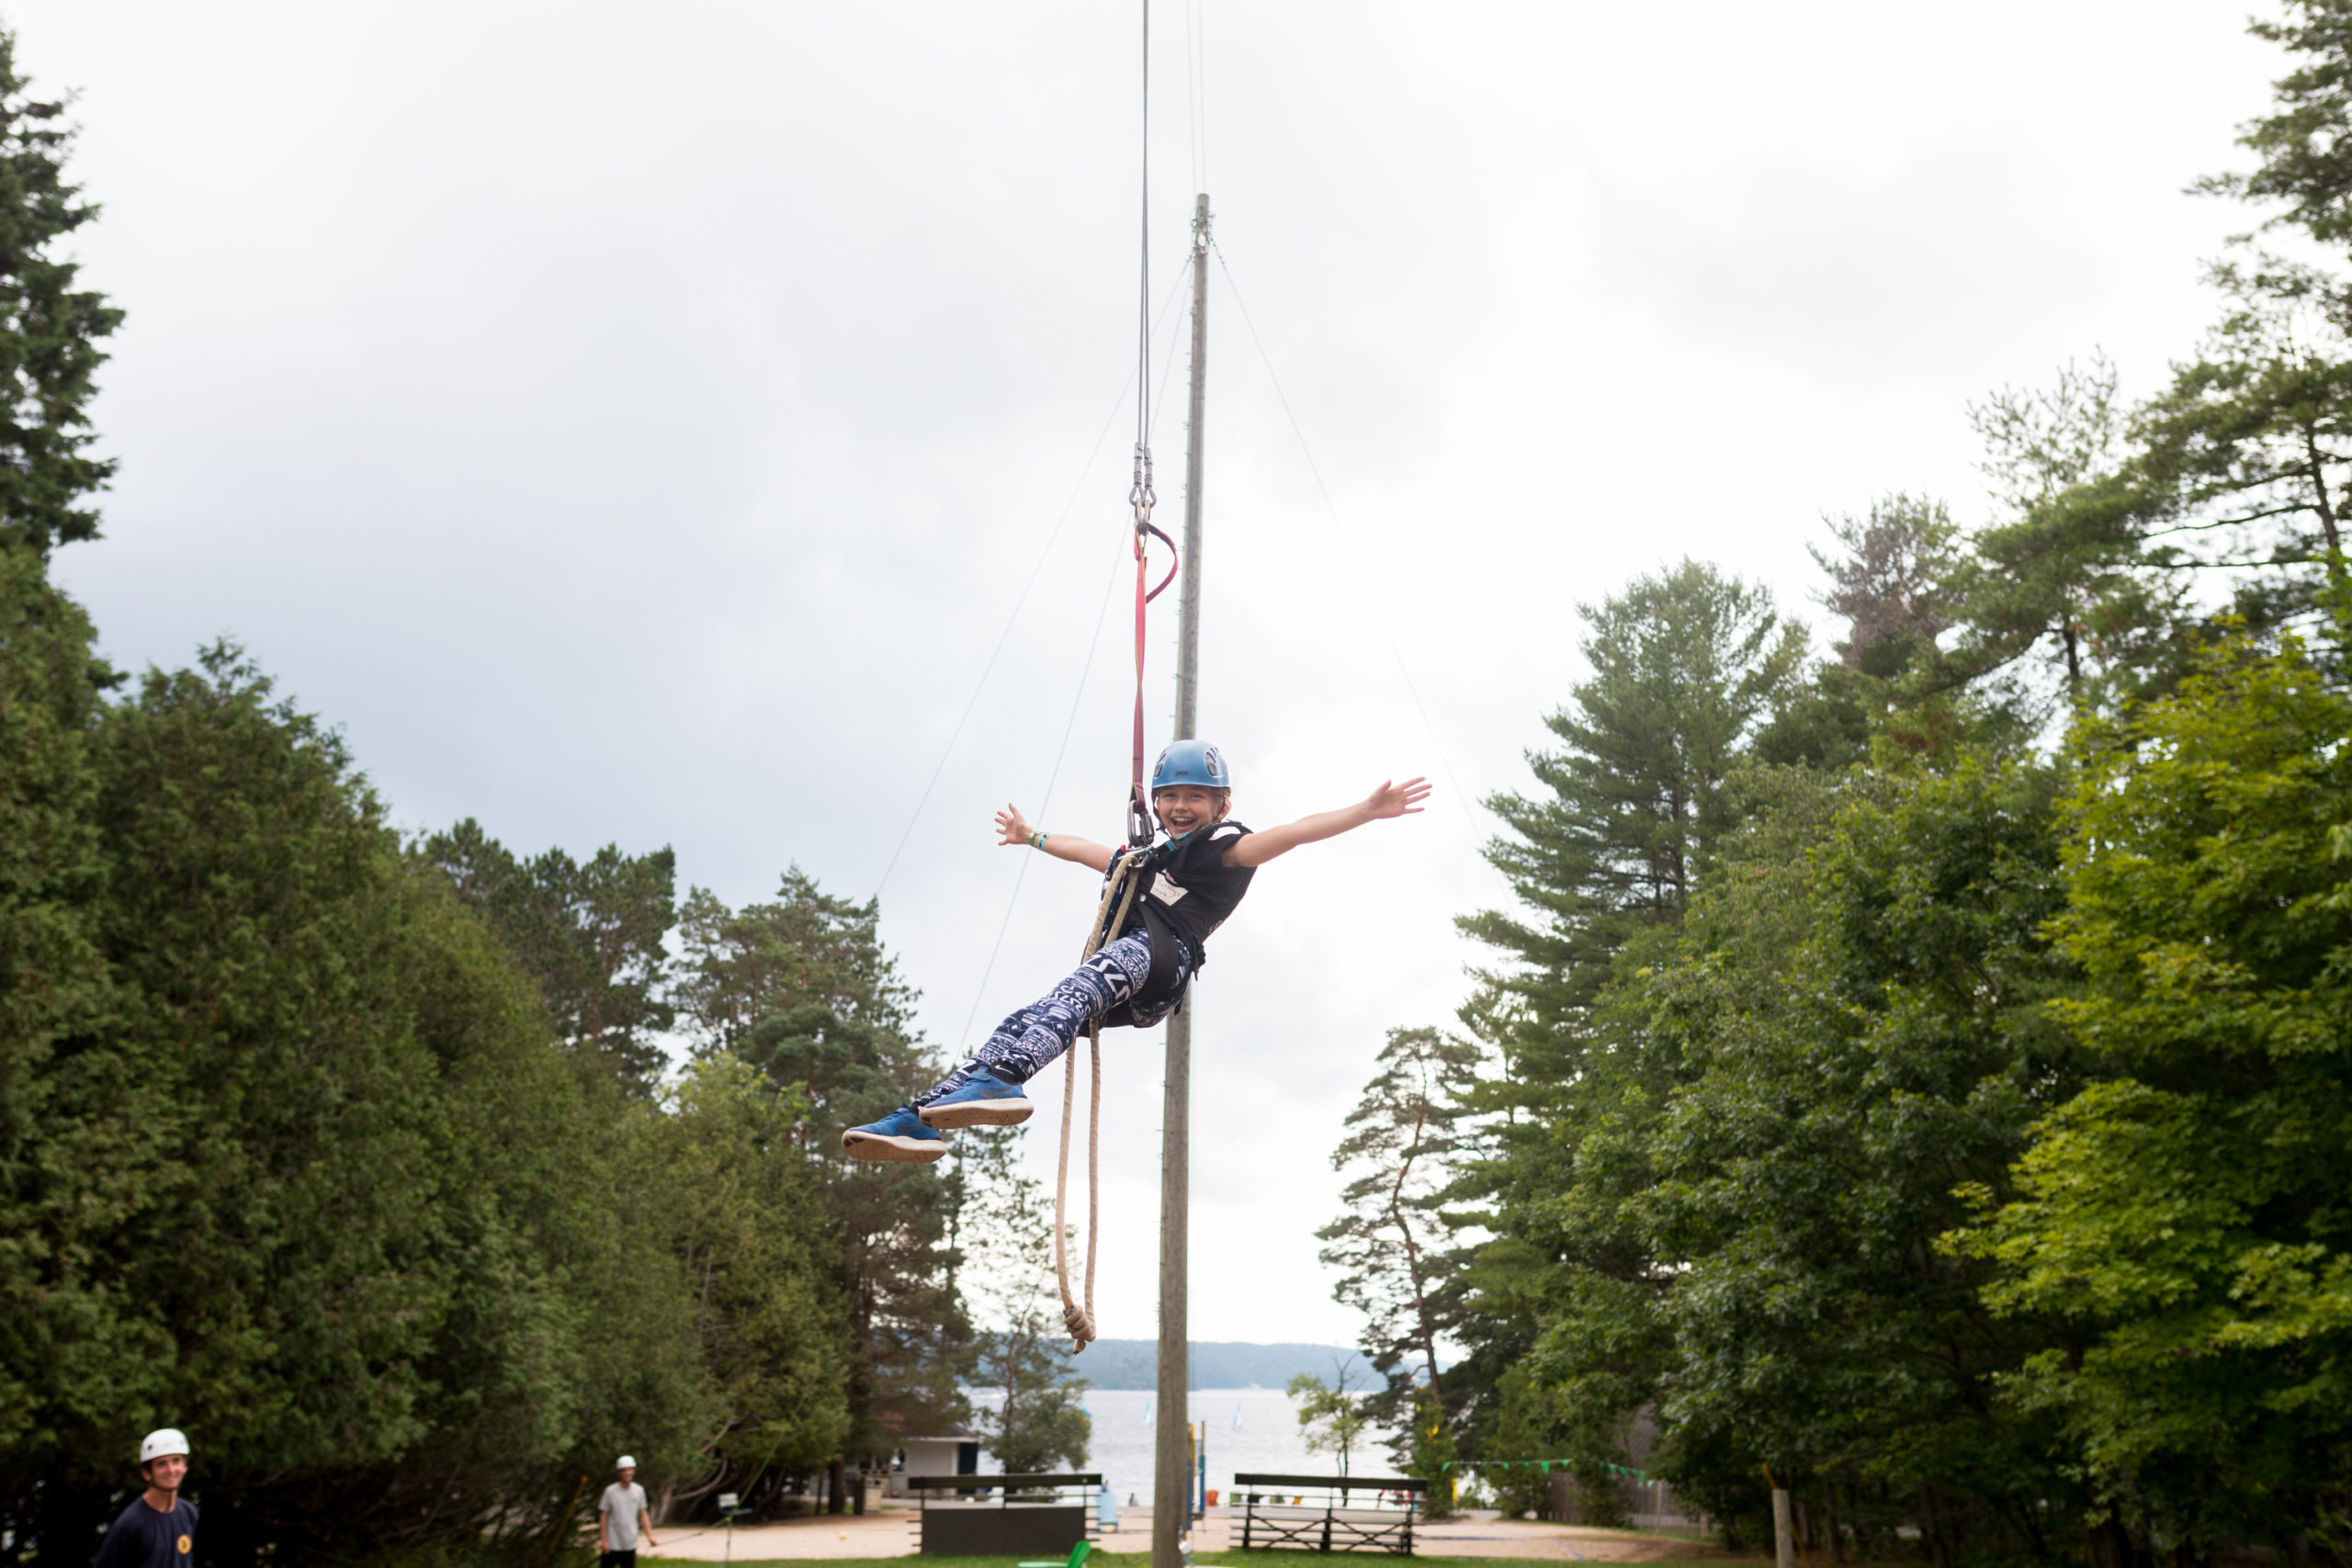 A girl enjoys a zipline ride with her arms reaching out to the sides